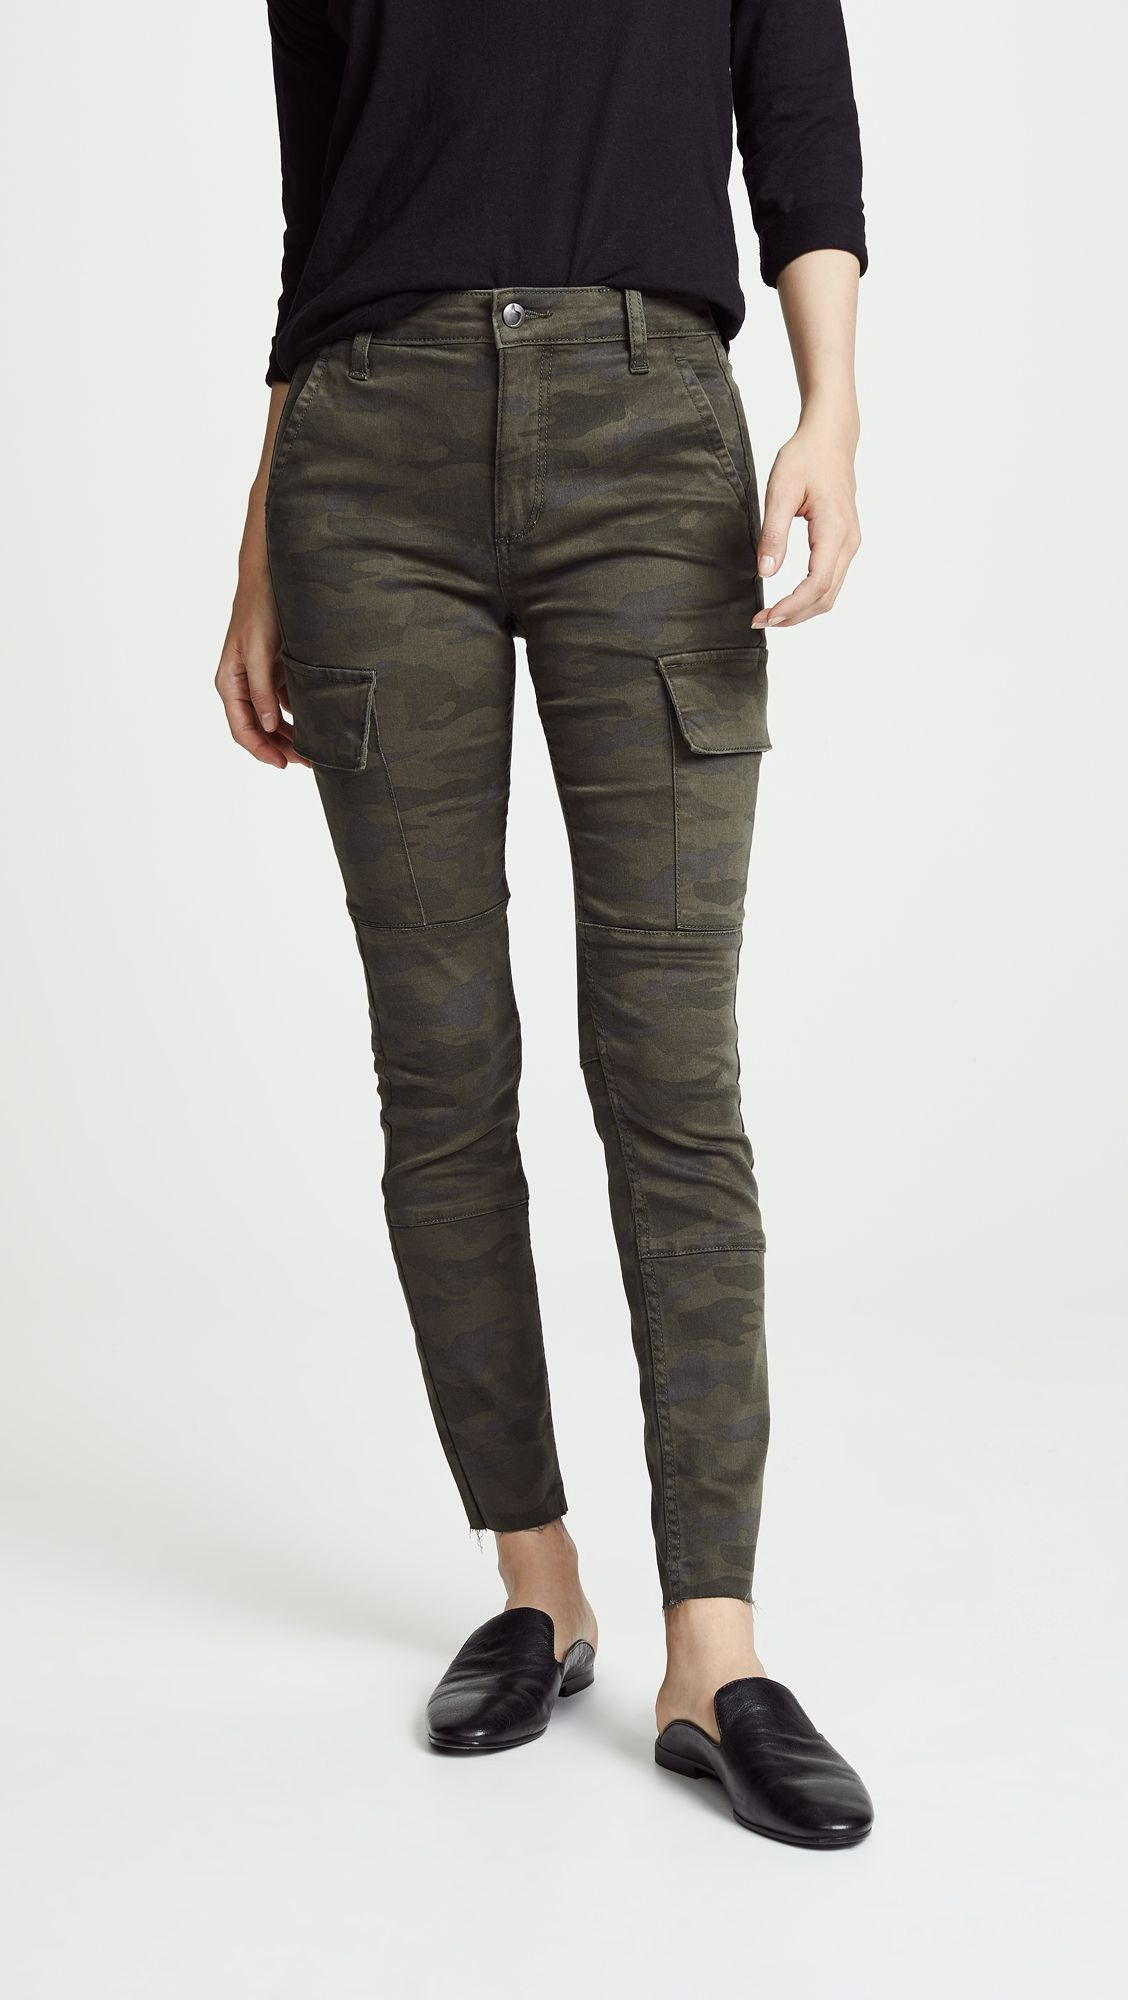 62713c307d219b Joe's Jeans The Charlie Ankle Jeans in 2018 | Products | Pinterest ...